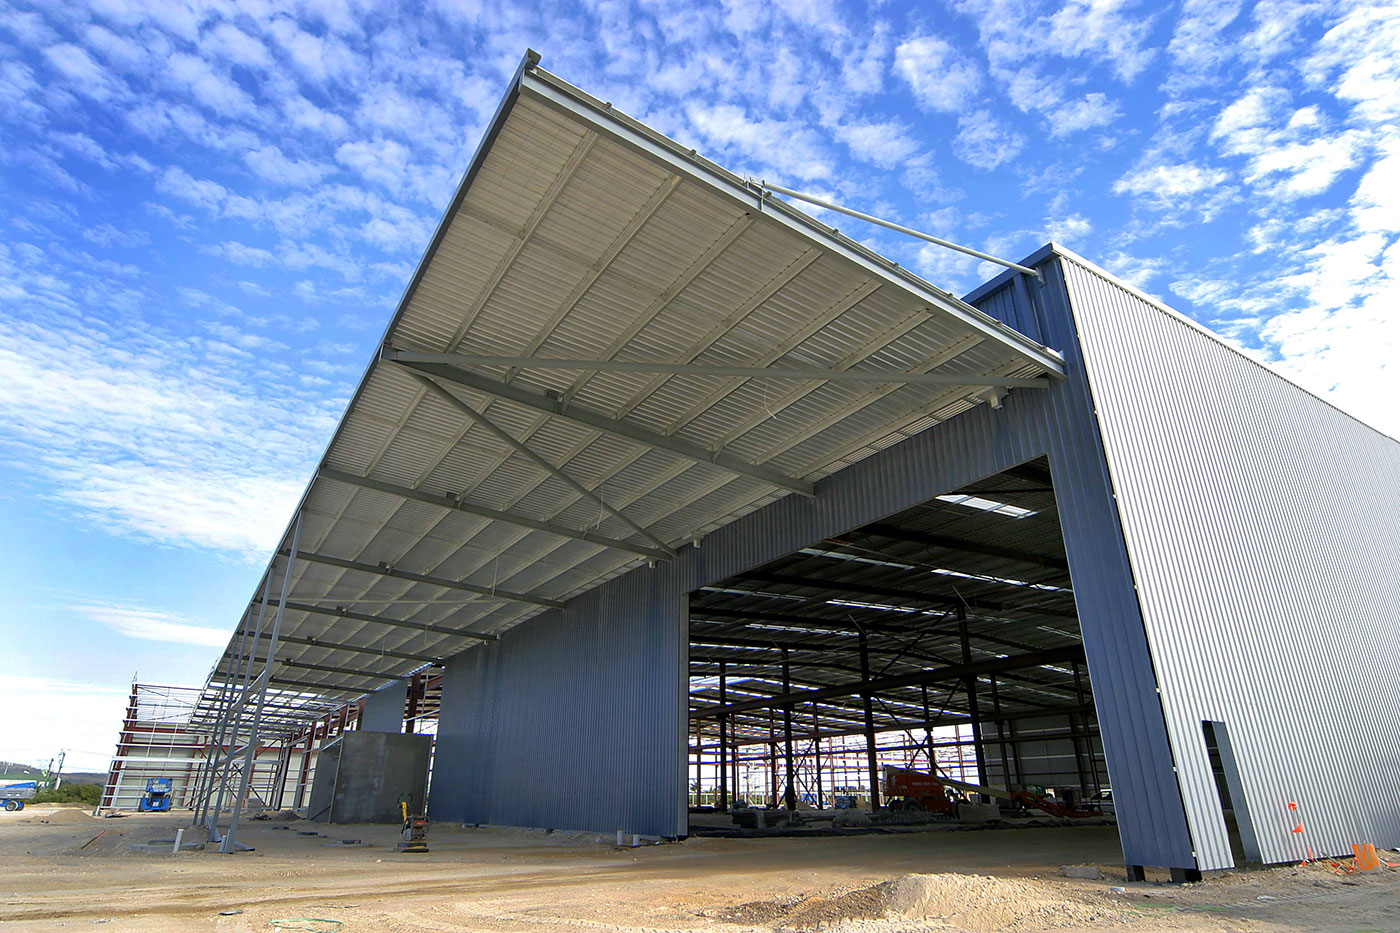 BlueScope Steel Process Facility : Image 3